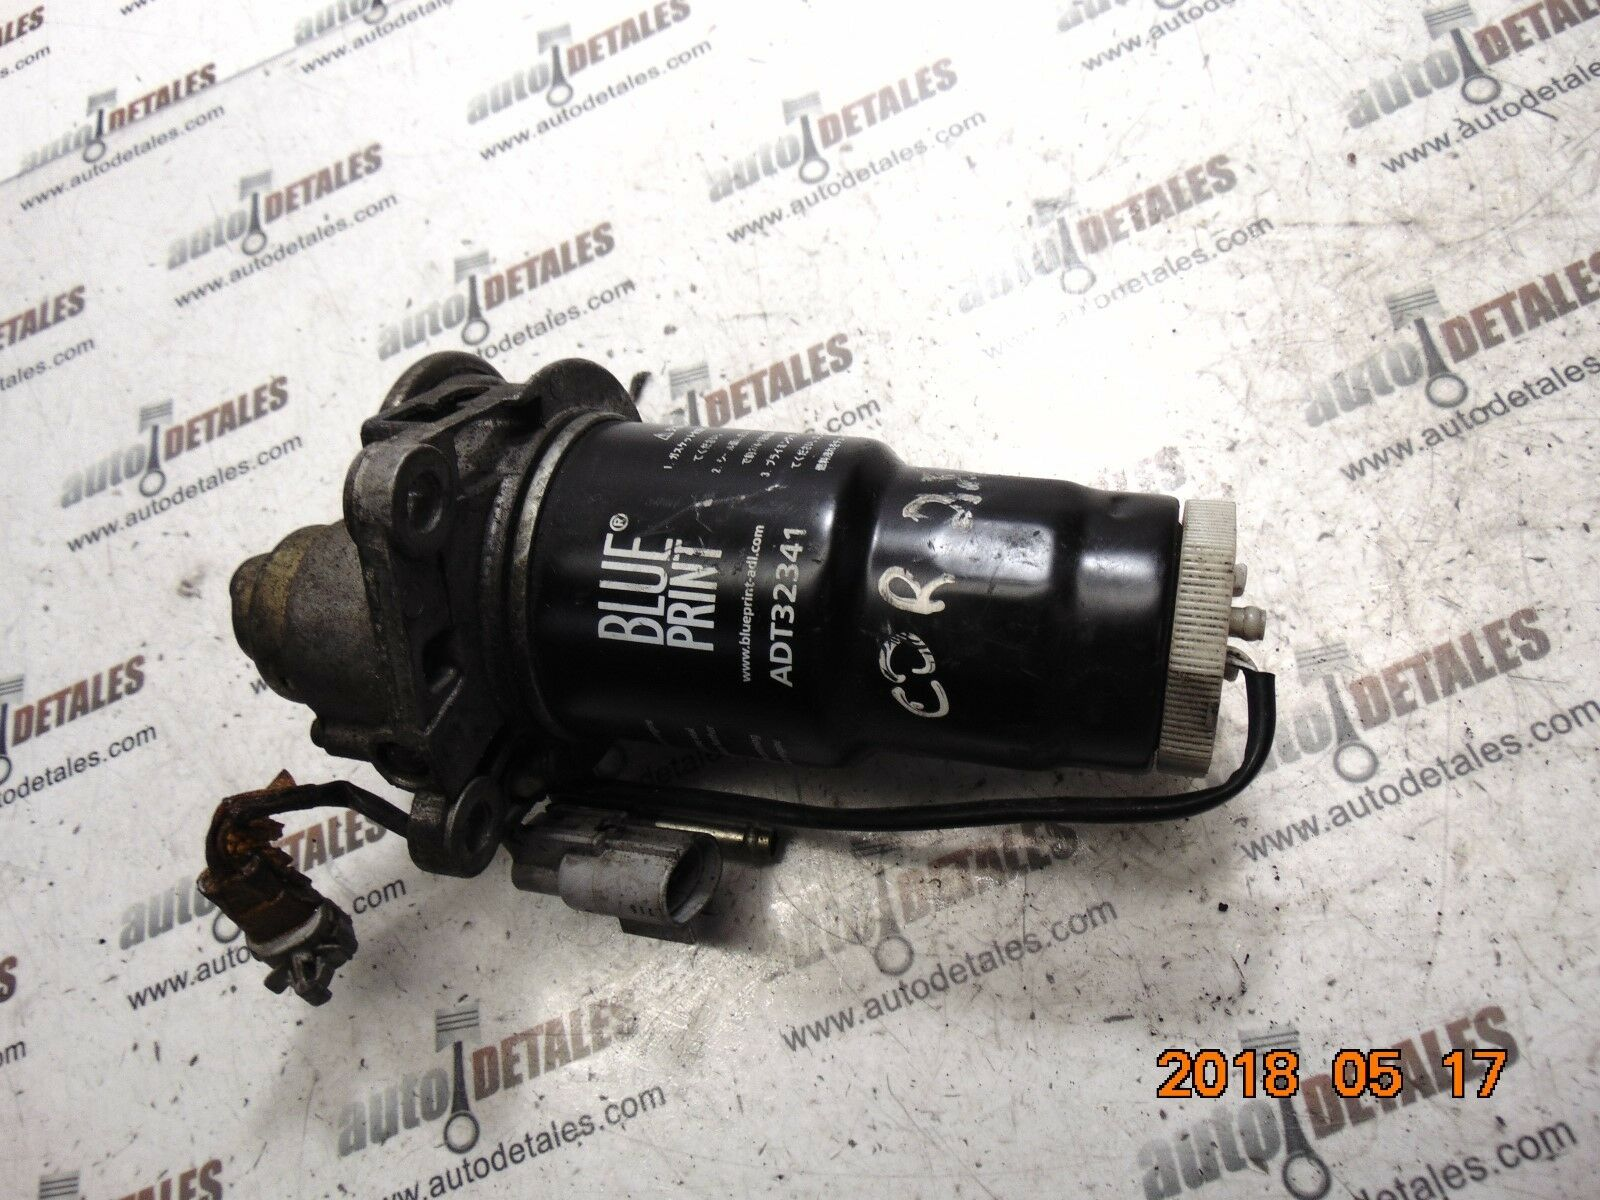 Toyota Corolla Verso 20 Diesel Fuel Filter With Housing Used 2003 1 Of 5 See More